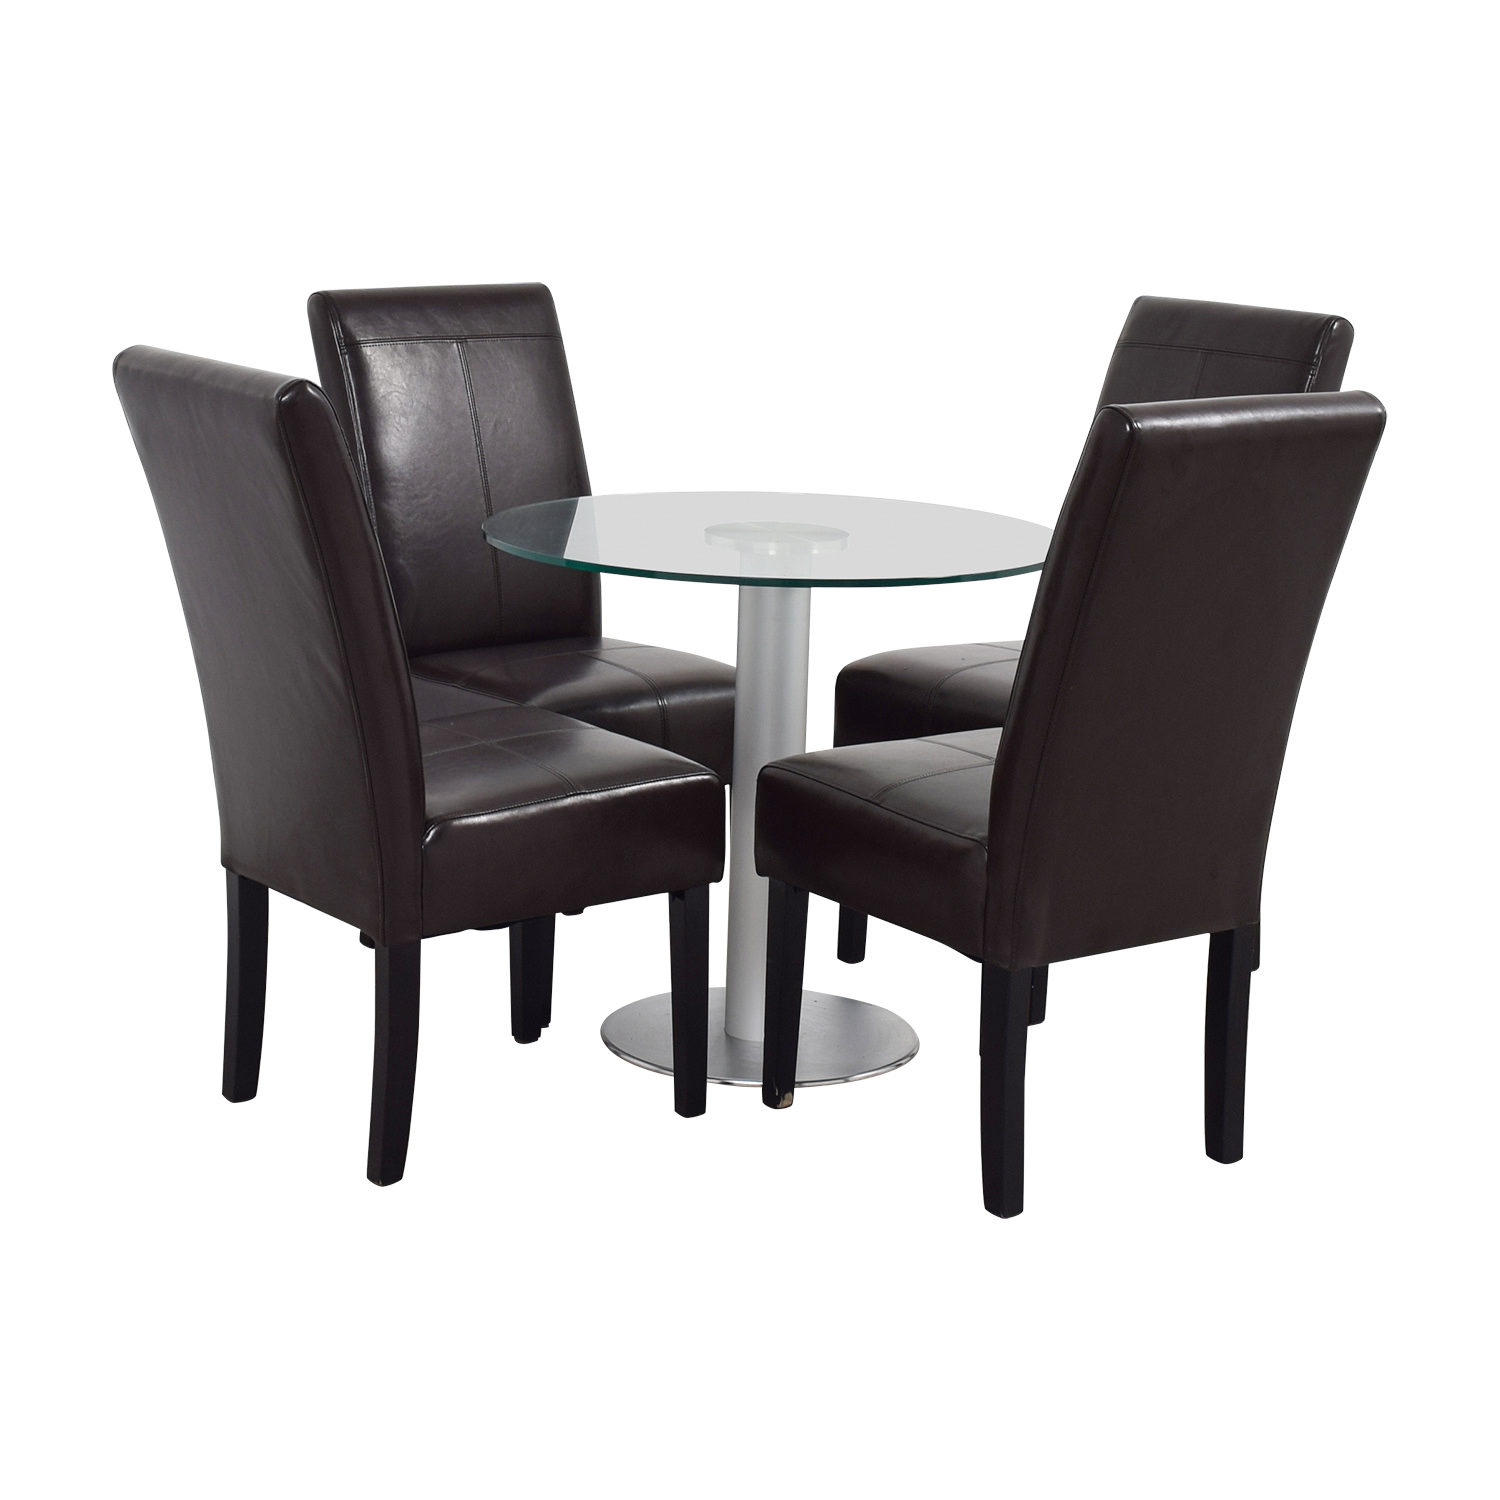 Round Glass and Metal Dining Set on sale